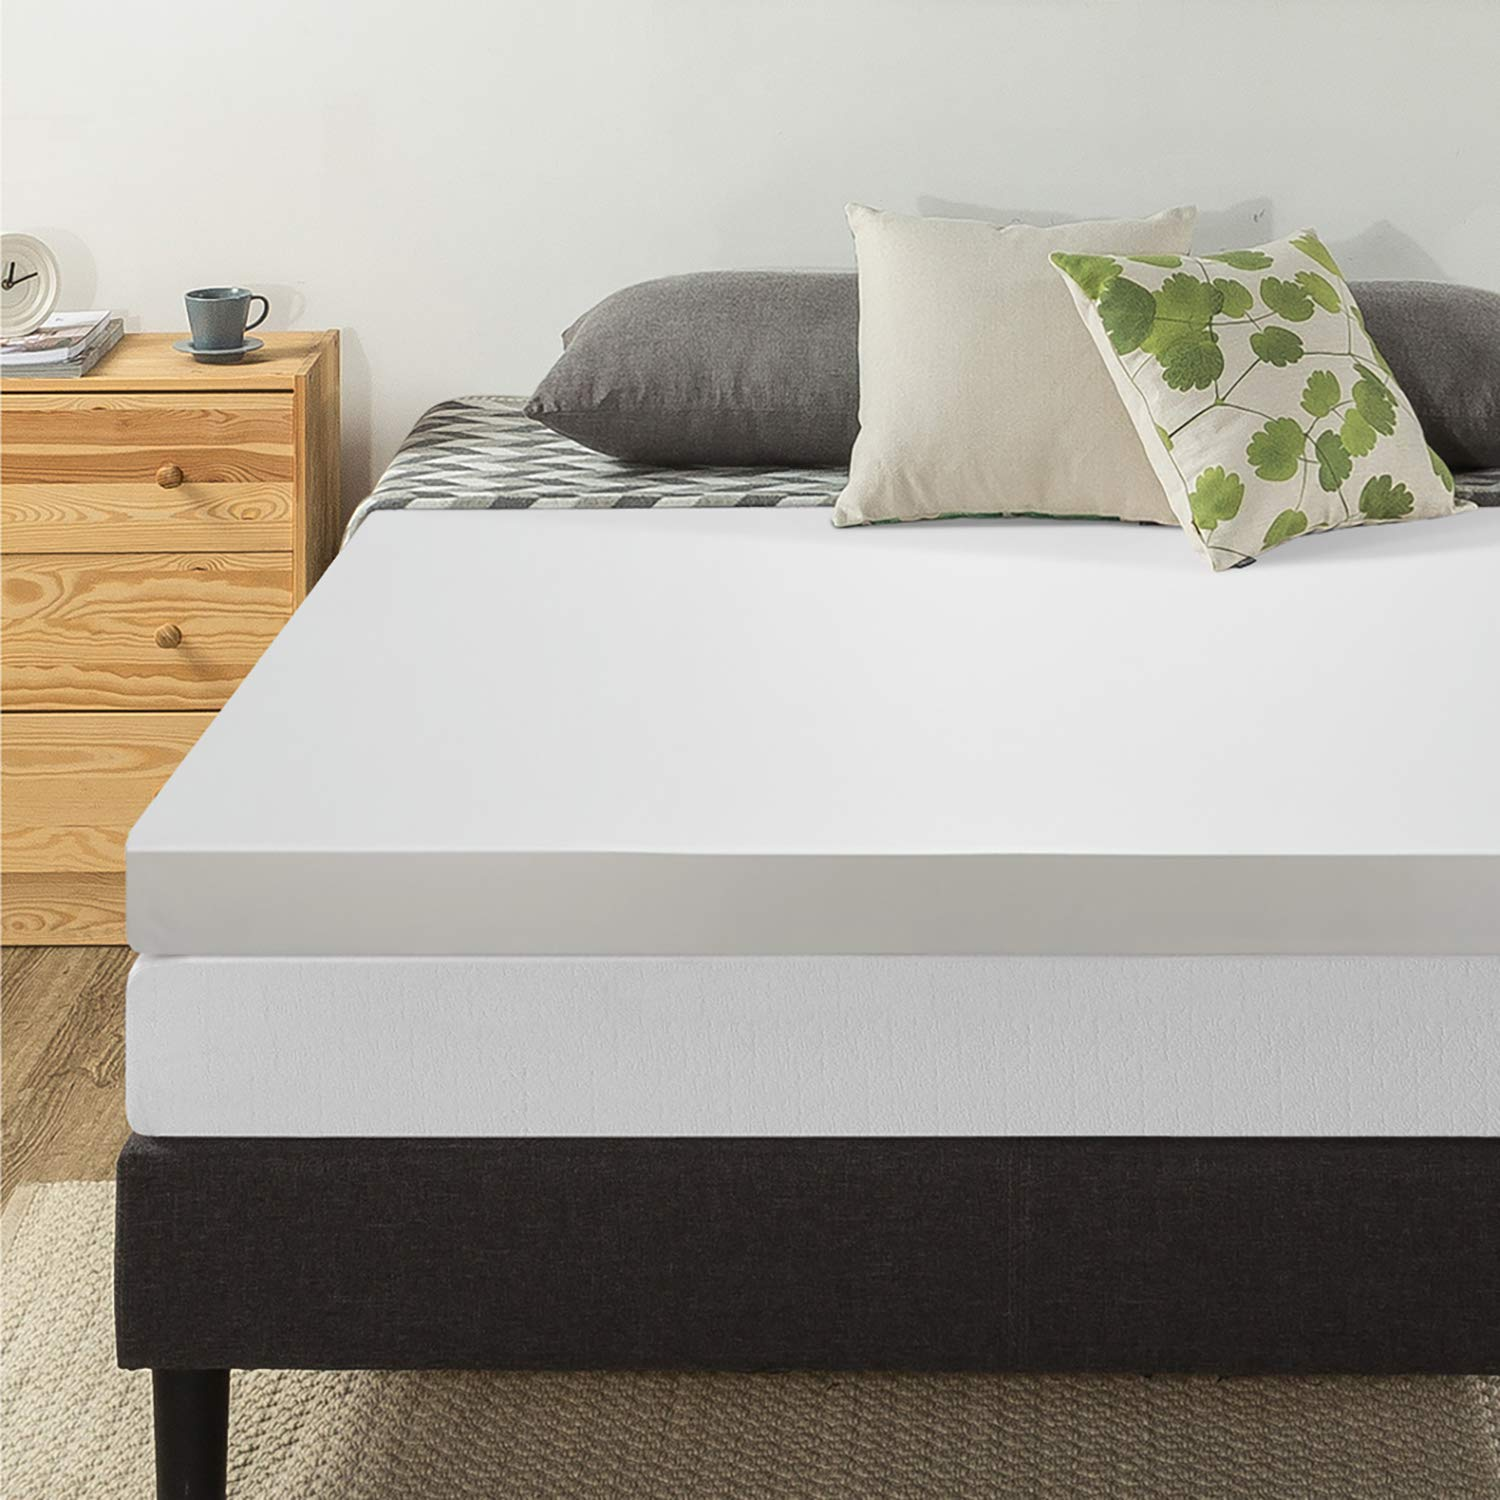 Top 10 Best Mattress Toppers Reviews in 2020 1